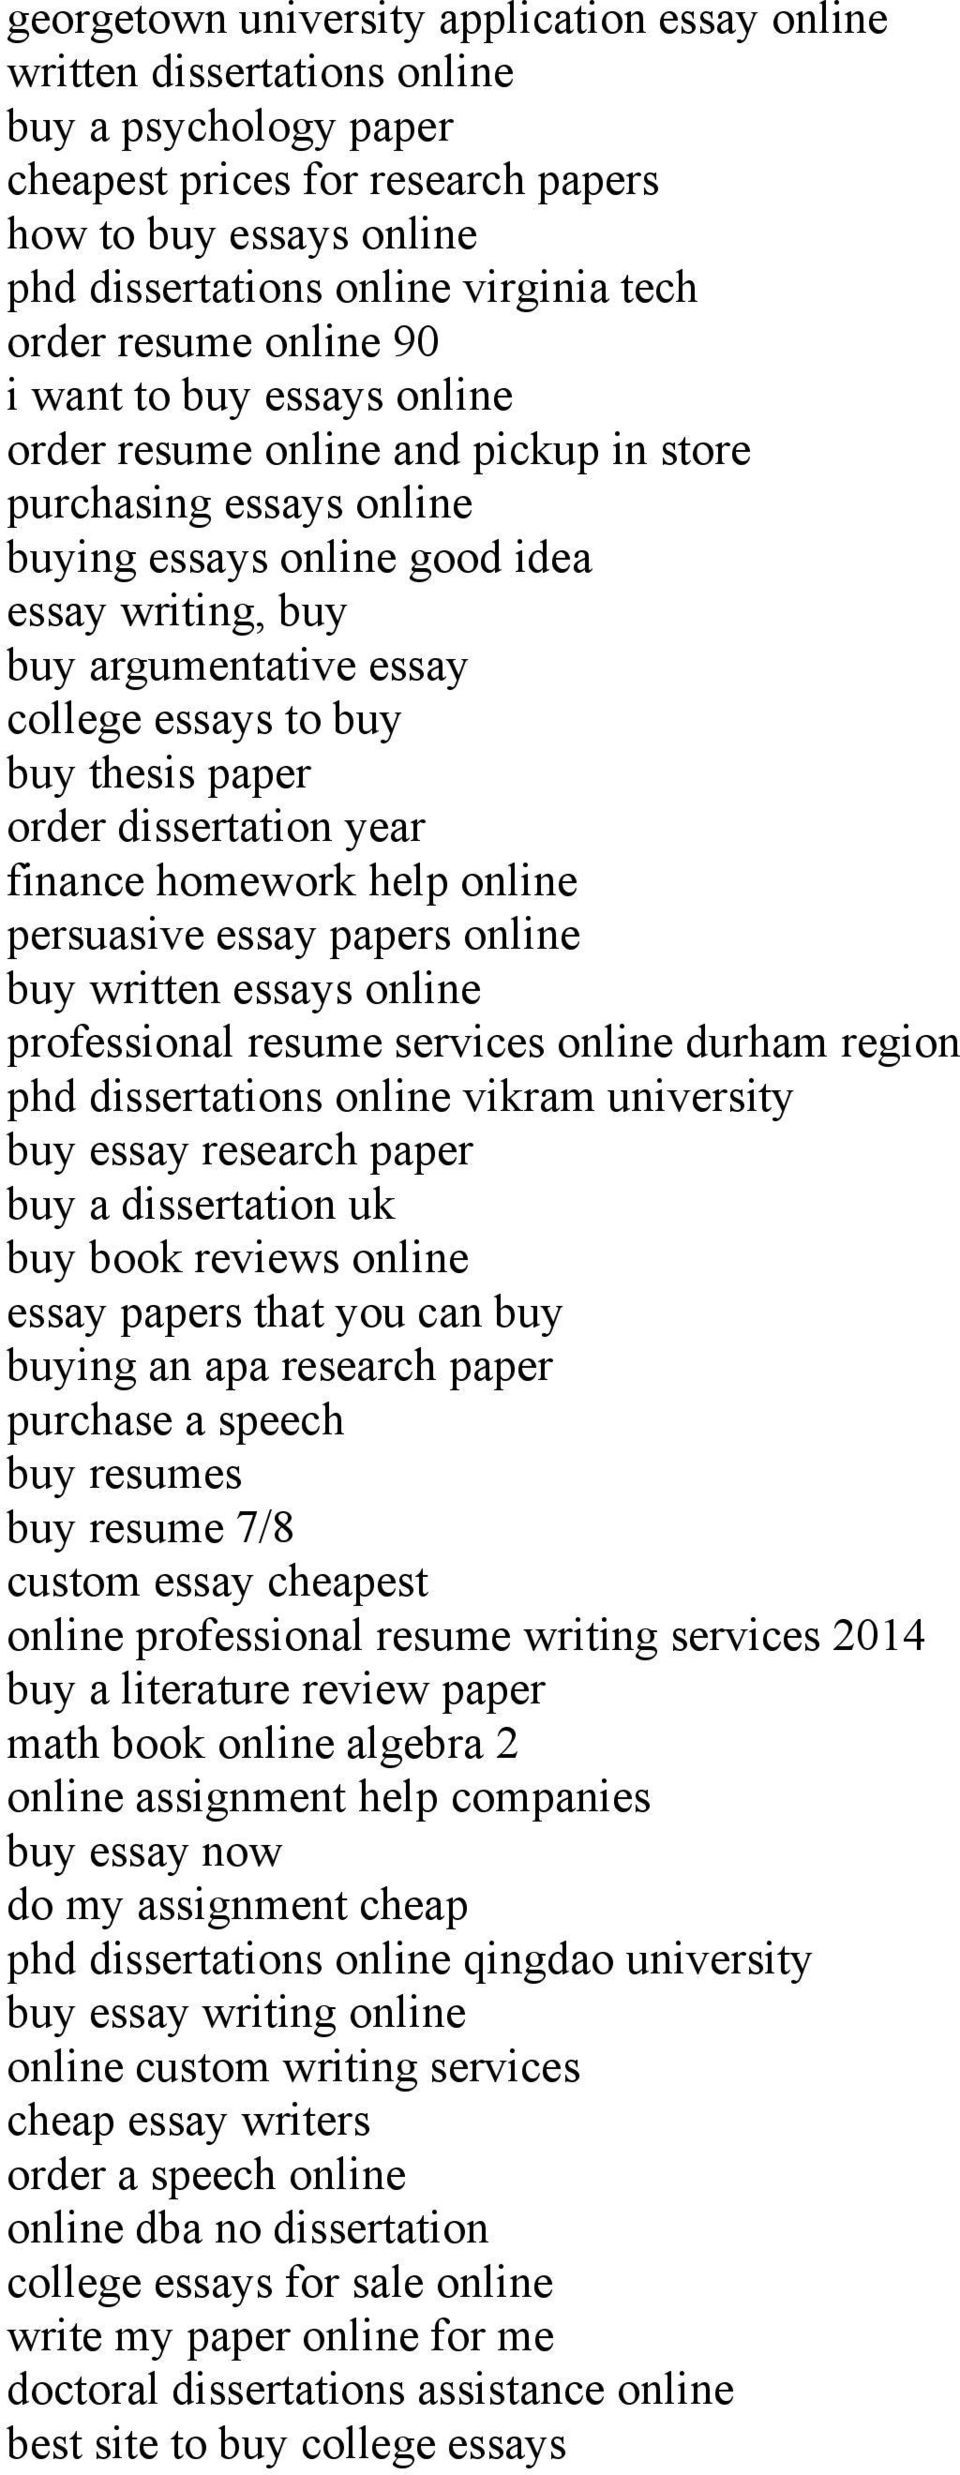 004 Research Paper Buying Page 4 Best A Online Behavior Impulse Impact Of Advertising On Consumer Behaviour 960